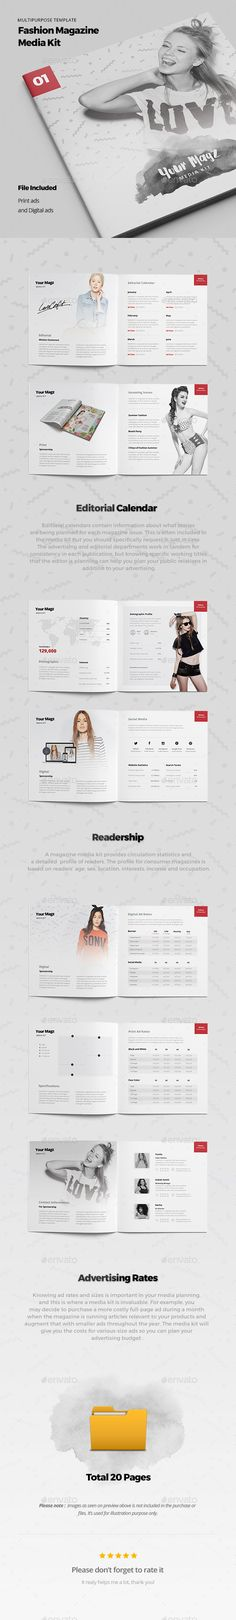 Magazine Media Kit Template PSD #design Download: http://graphicriver.net/item/magazine-media-kit/14177842?ref=ksioks